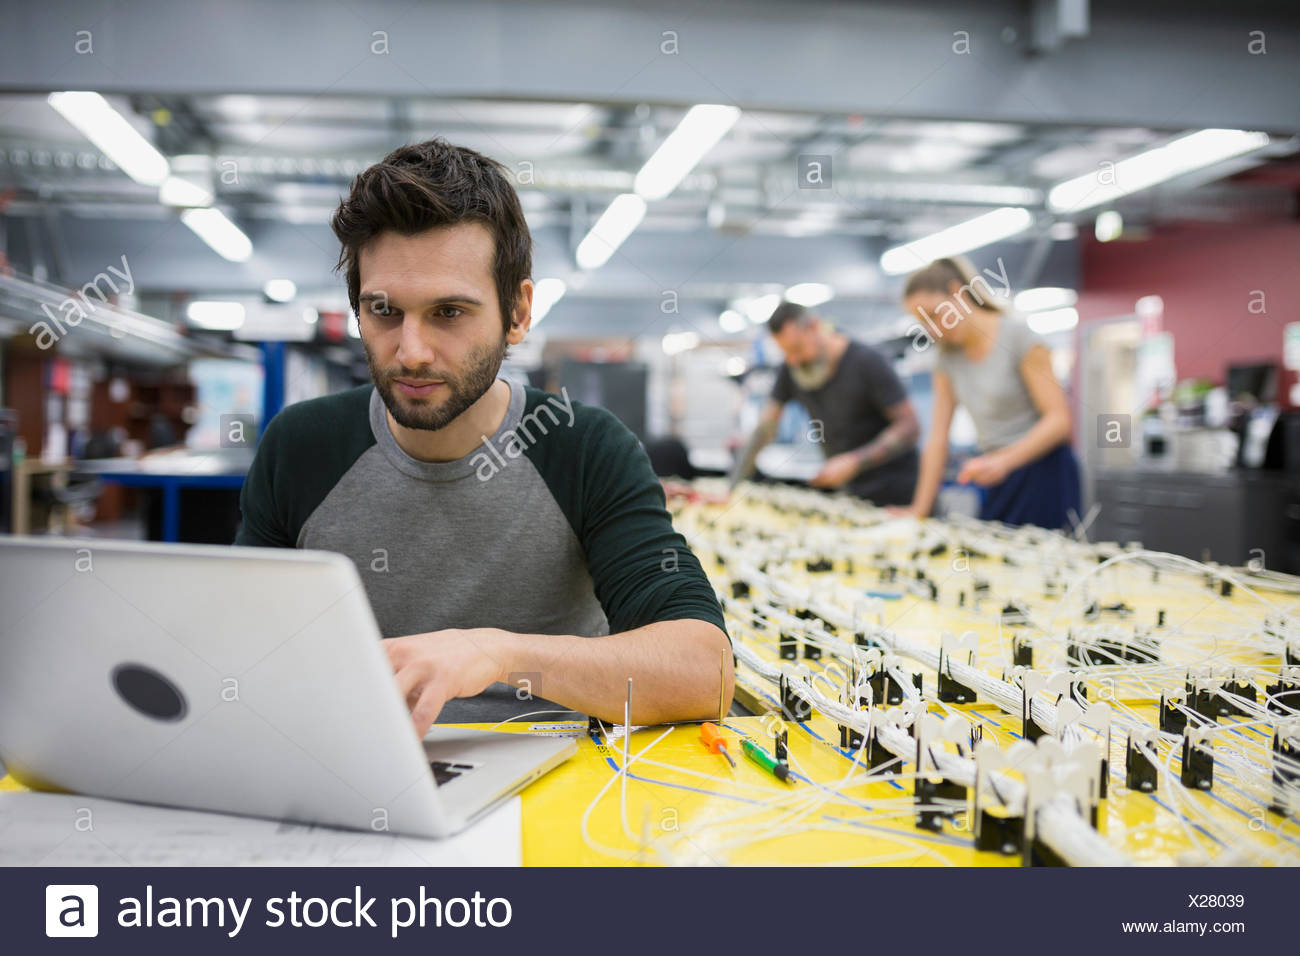 helicopter technician using laptop at wiring harness stock photo rh alamy com